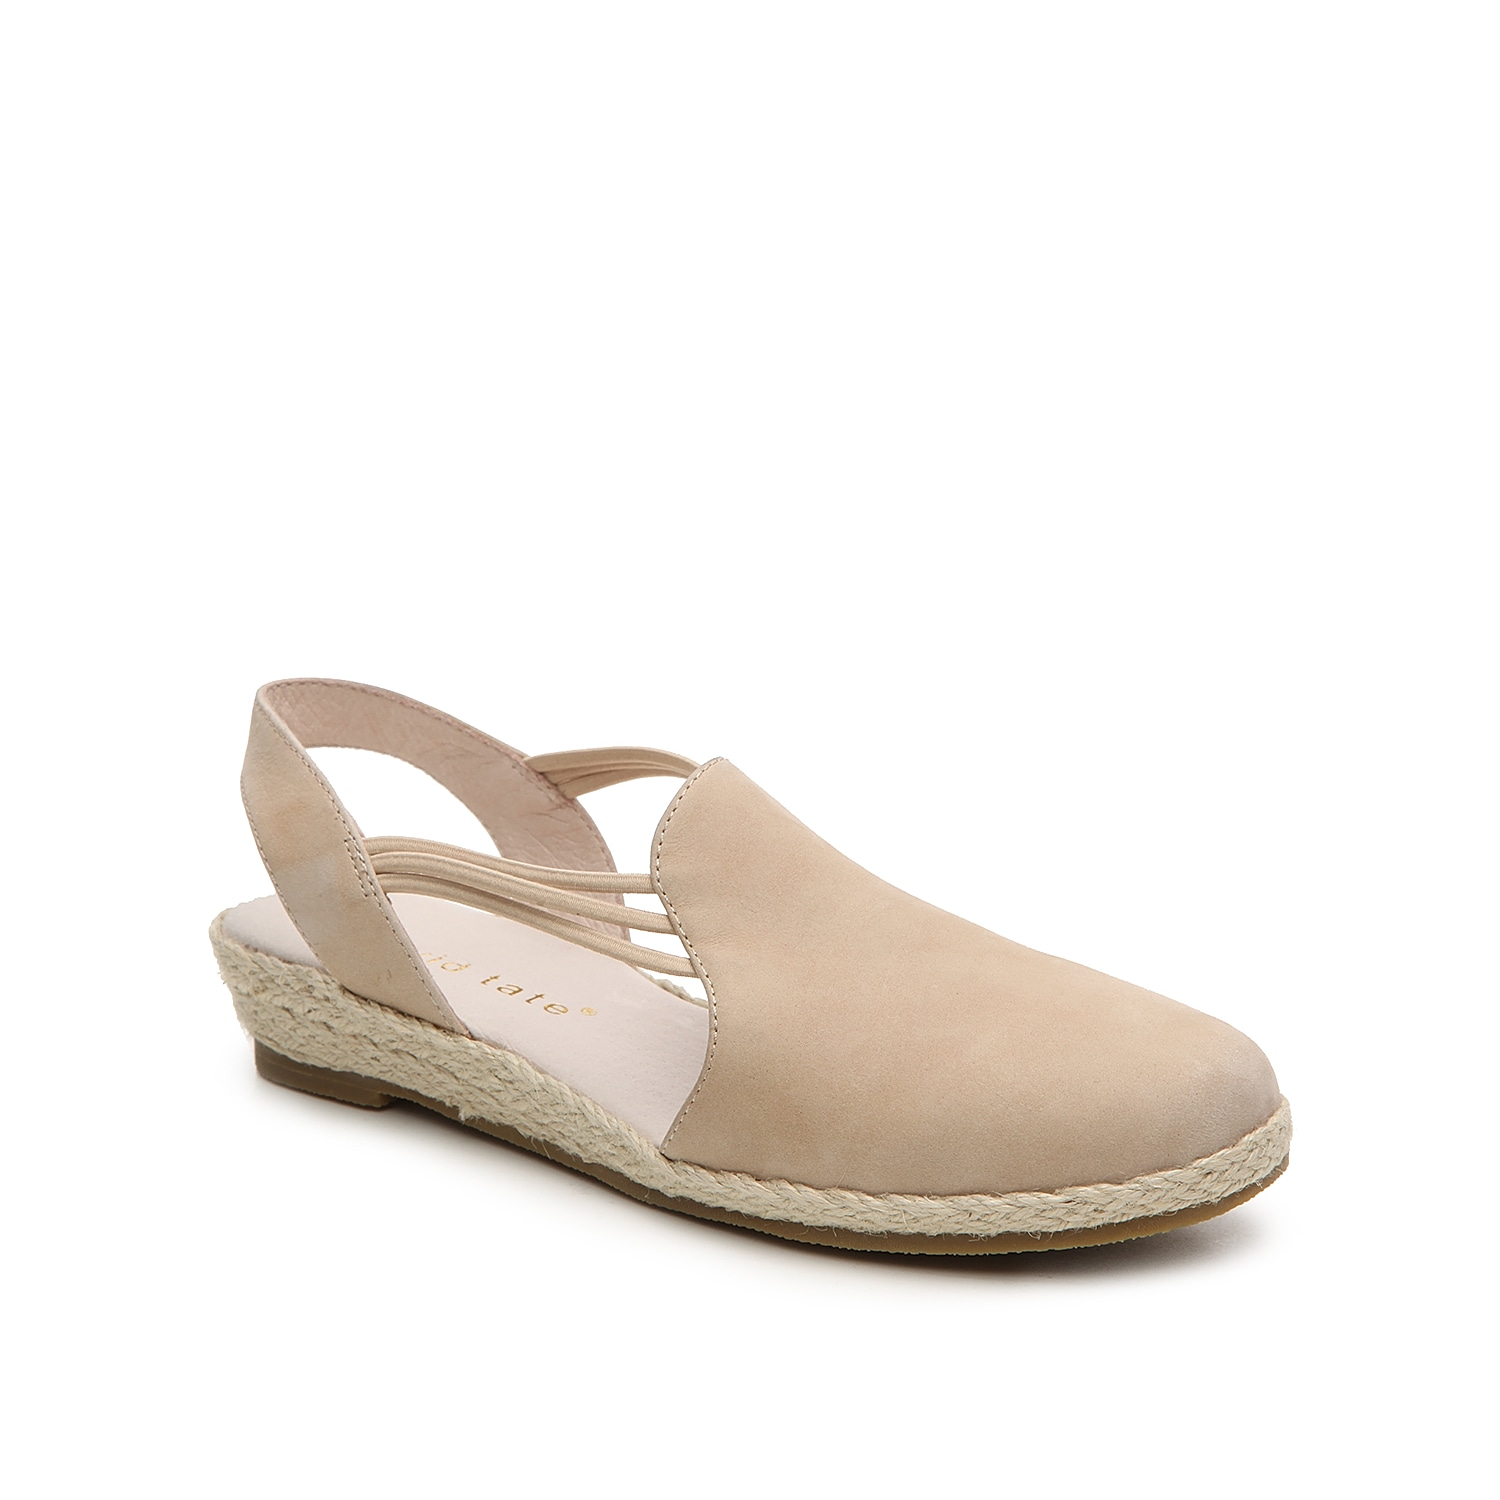 David Tate brings you a uniquely designed wedge sandal. The Nice has hooded styling with bungee straps and an espadrille trim.